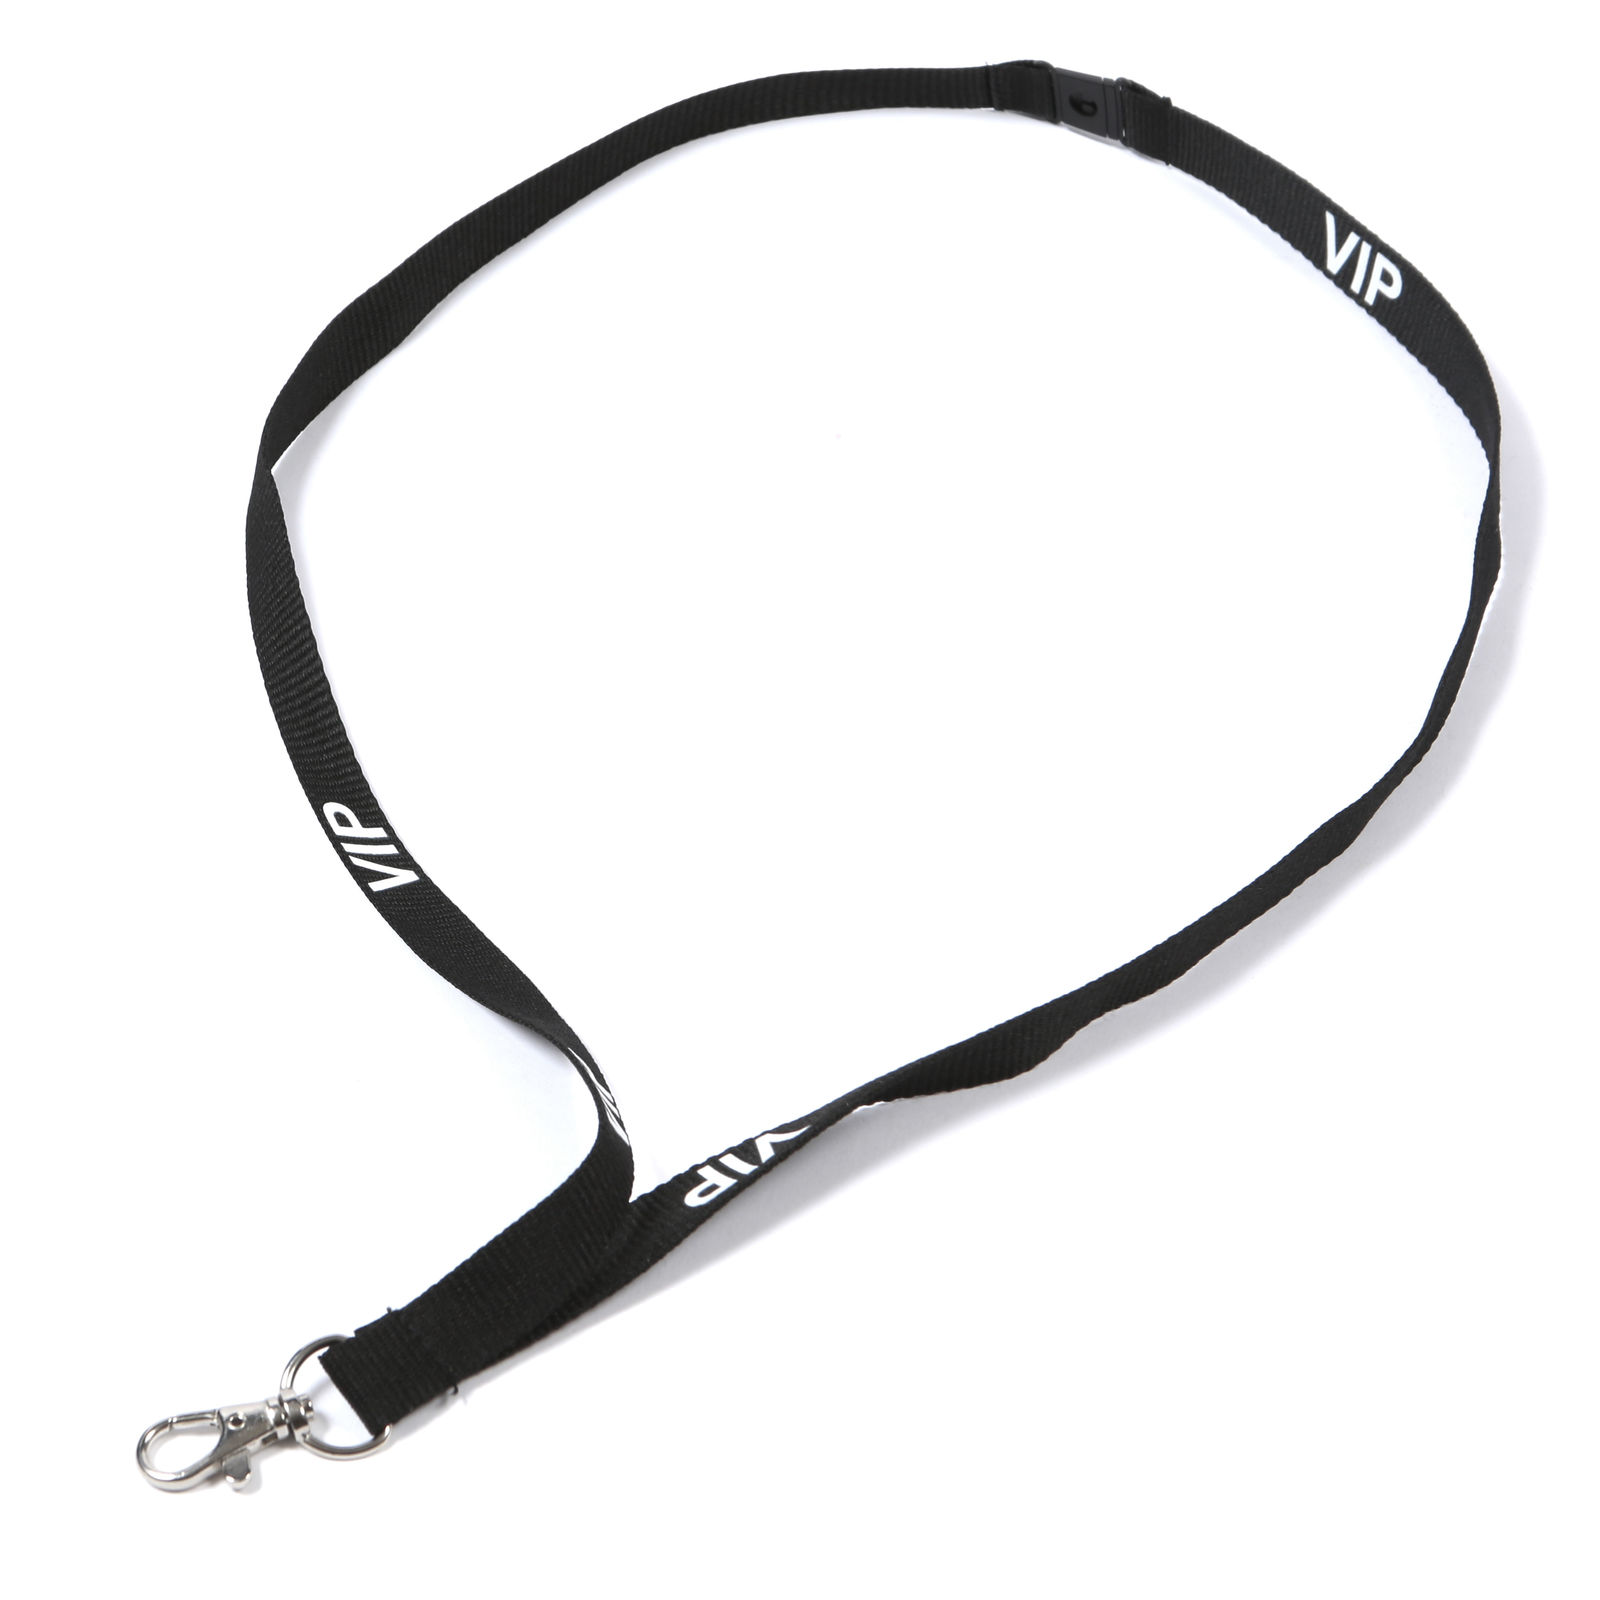 Buy Black VIP on Lanyards Direct Today!